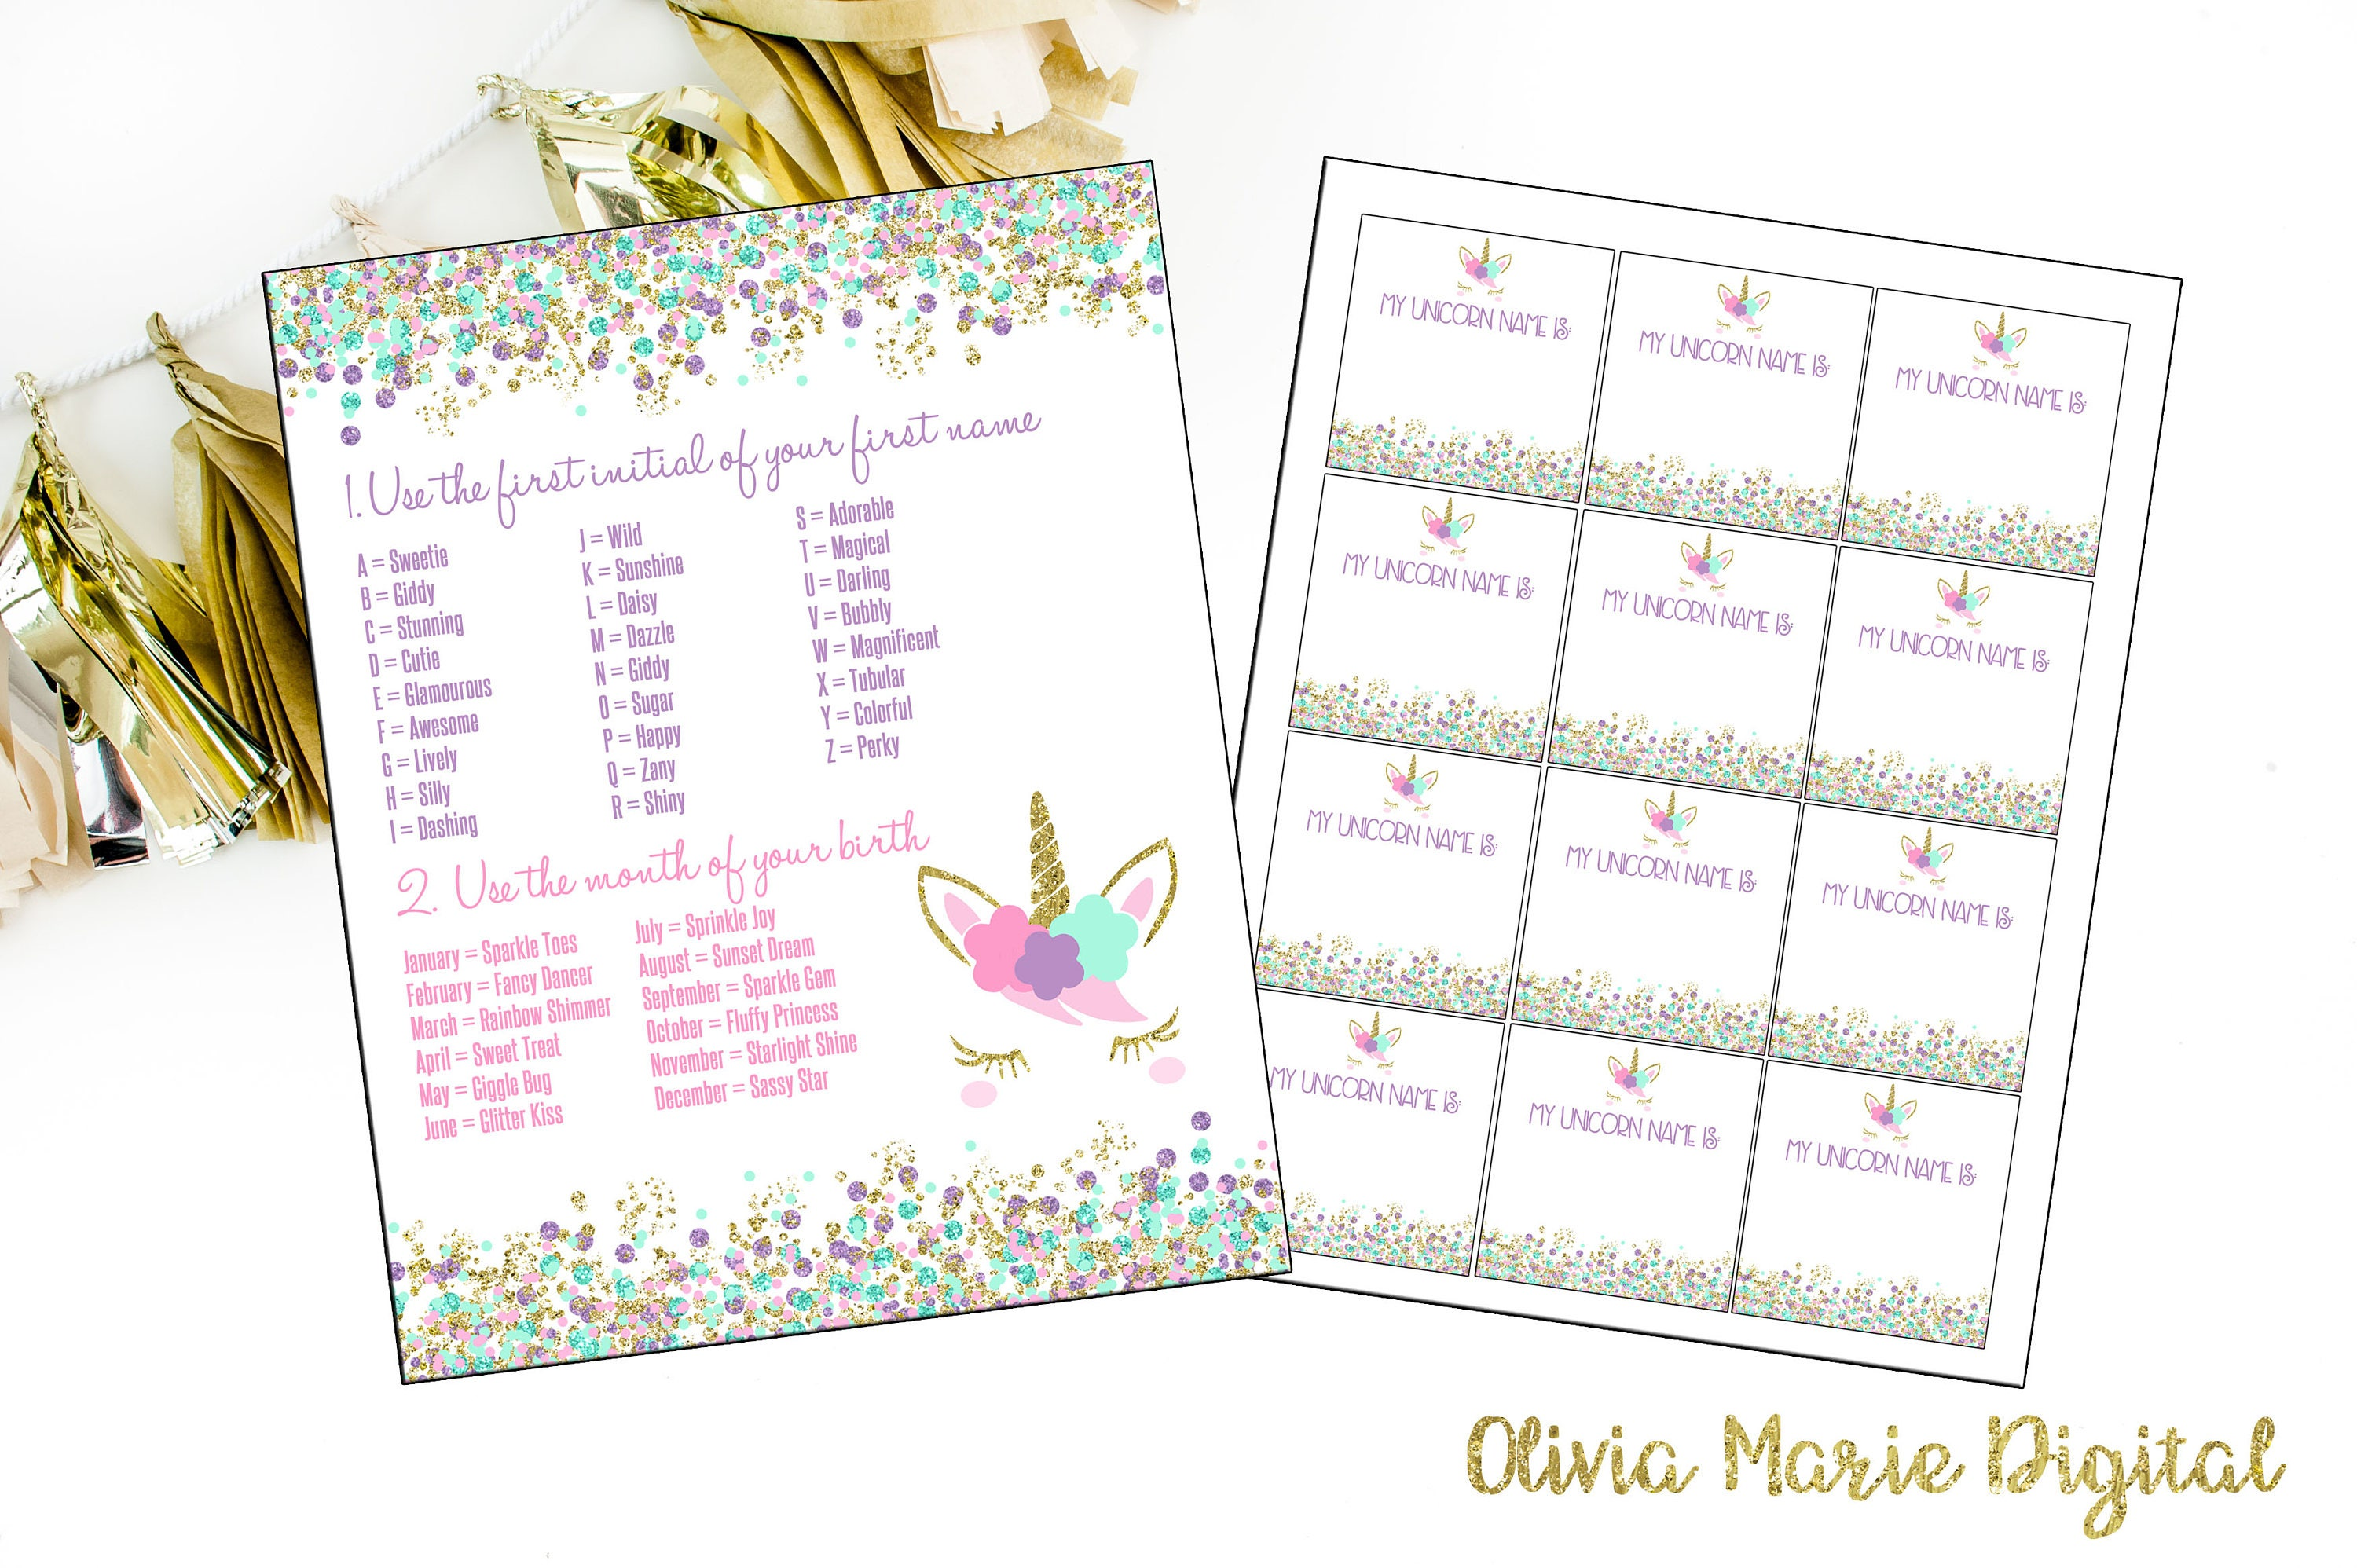 INSTANT DOWNLOAD - Unicorn Name Generator - Unicorn Party - Pastel Unicorn  Birthday Party - Unicorn Name Printable - Find Your Unicorn